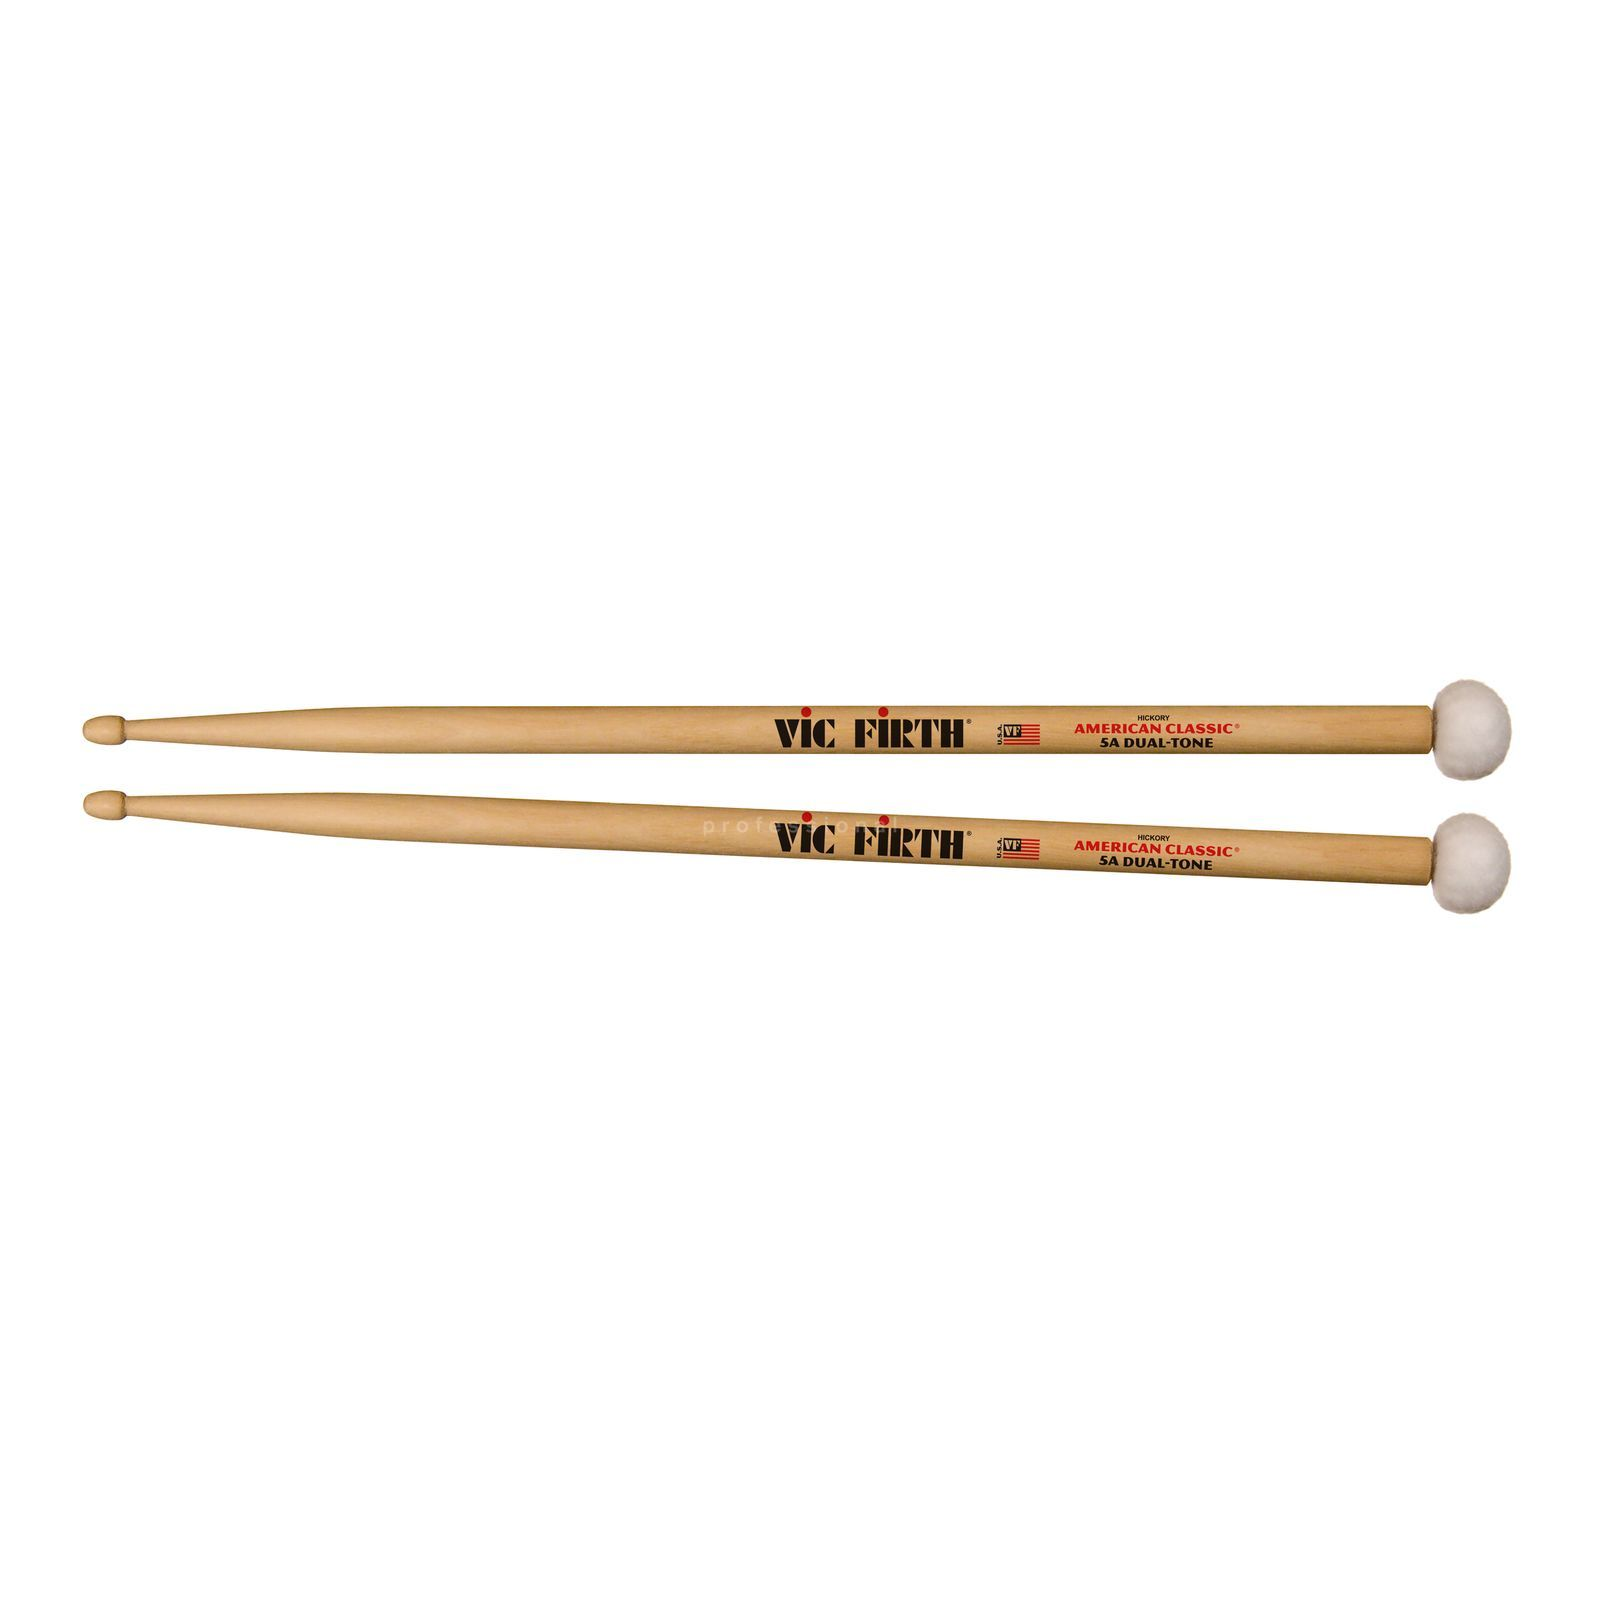 Vic-Firth 5ADT Combination Sticks, Wood Tip & Felt Mallet Produktbild